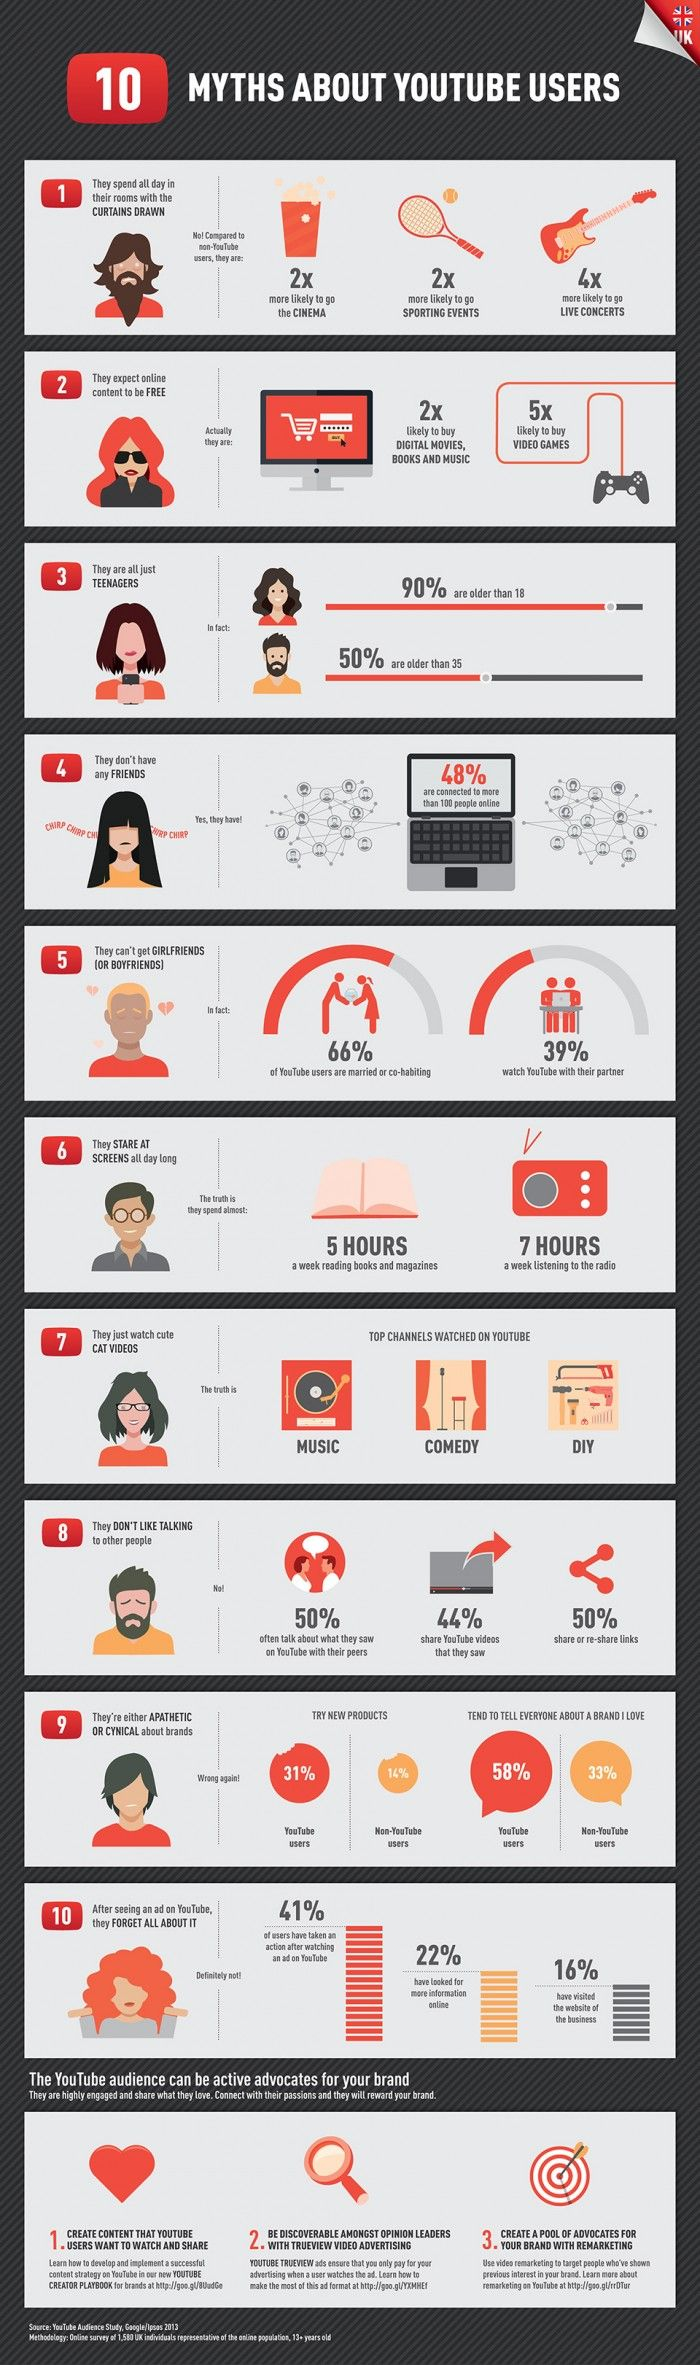 #YOUTUBE · 10 Myths about YouTube users:http://www.dailyinfographic.com/10-myths-about-youtube-users?utm_source=feedburner&utm_medium=email&utm_campaign=Feed%3A+DailyInfographic+%28Daily+Infographic%29 · #digitallifestyle #CannesLions